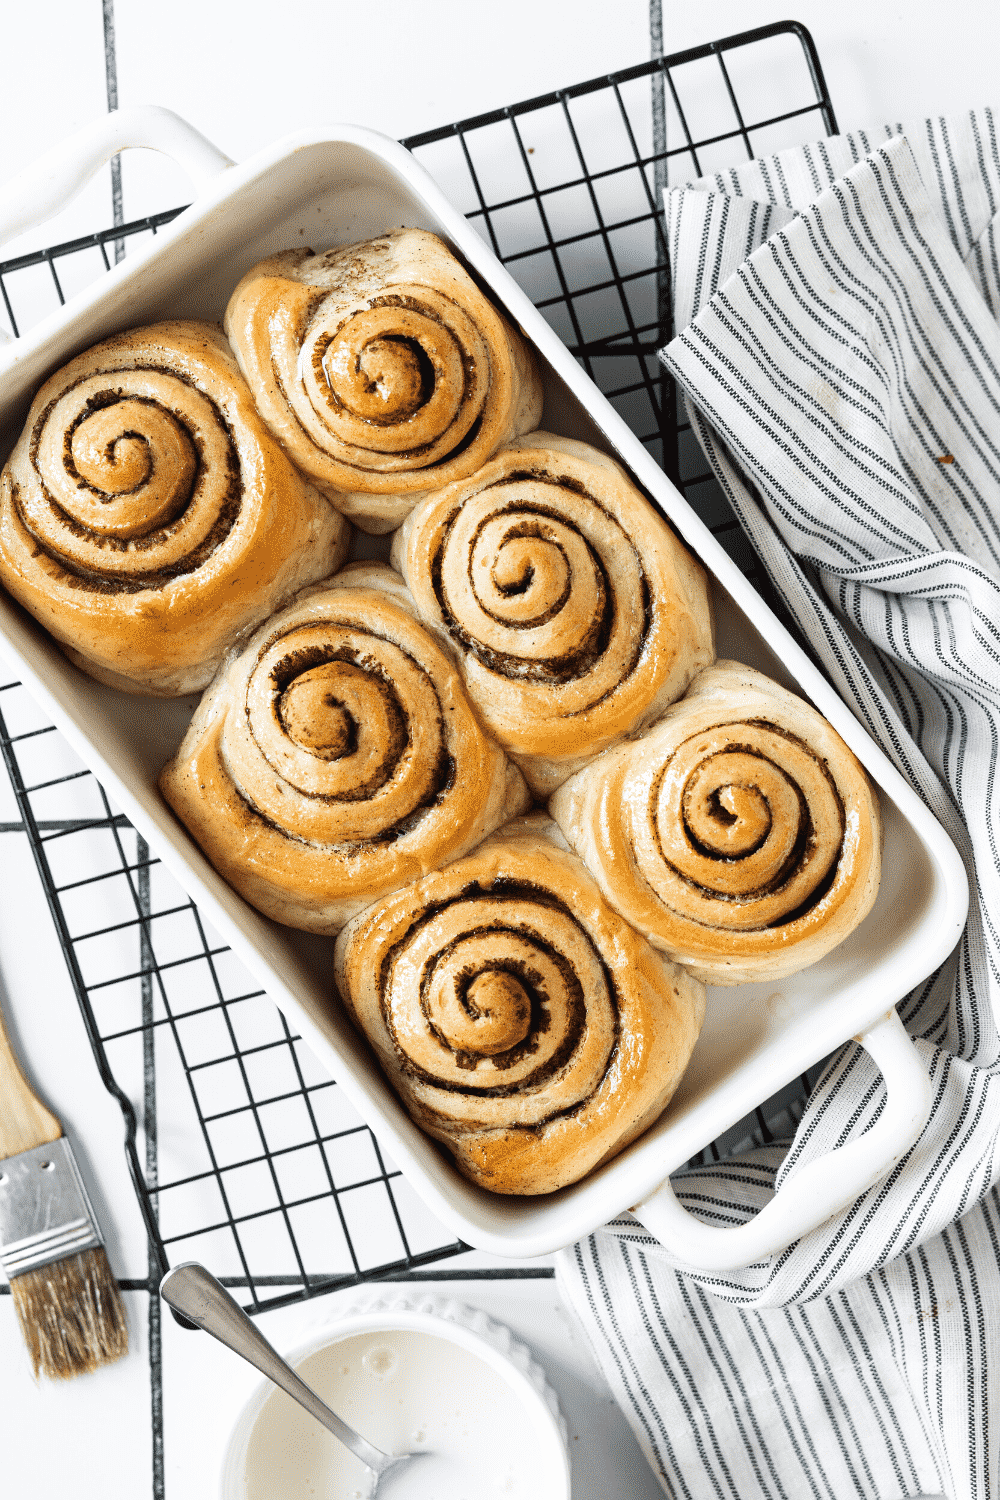 A square baking dish filled with six cinnamon rolls. The baking dish is on a black wire rack.